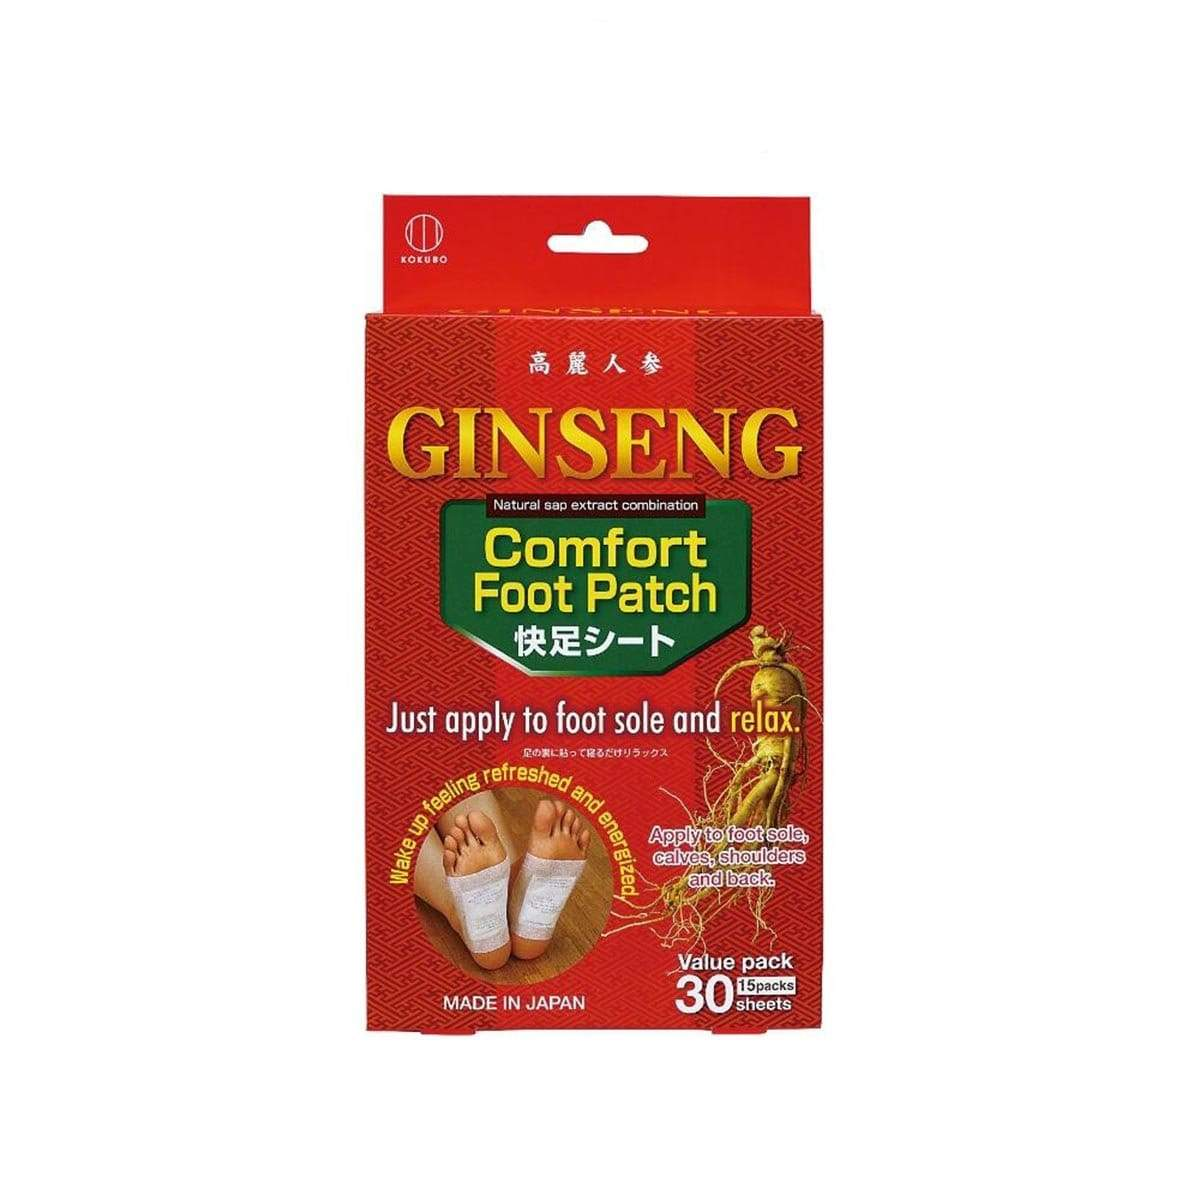 Japanese Comfort Foot Patch Ginseng 30 sheets